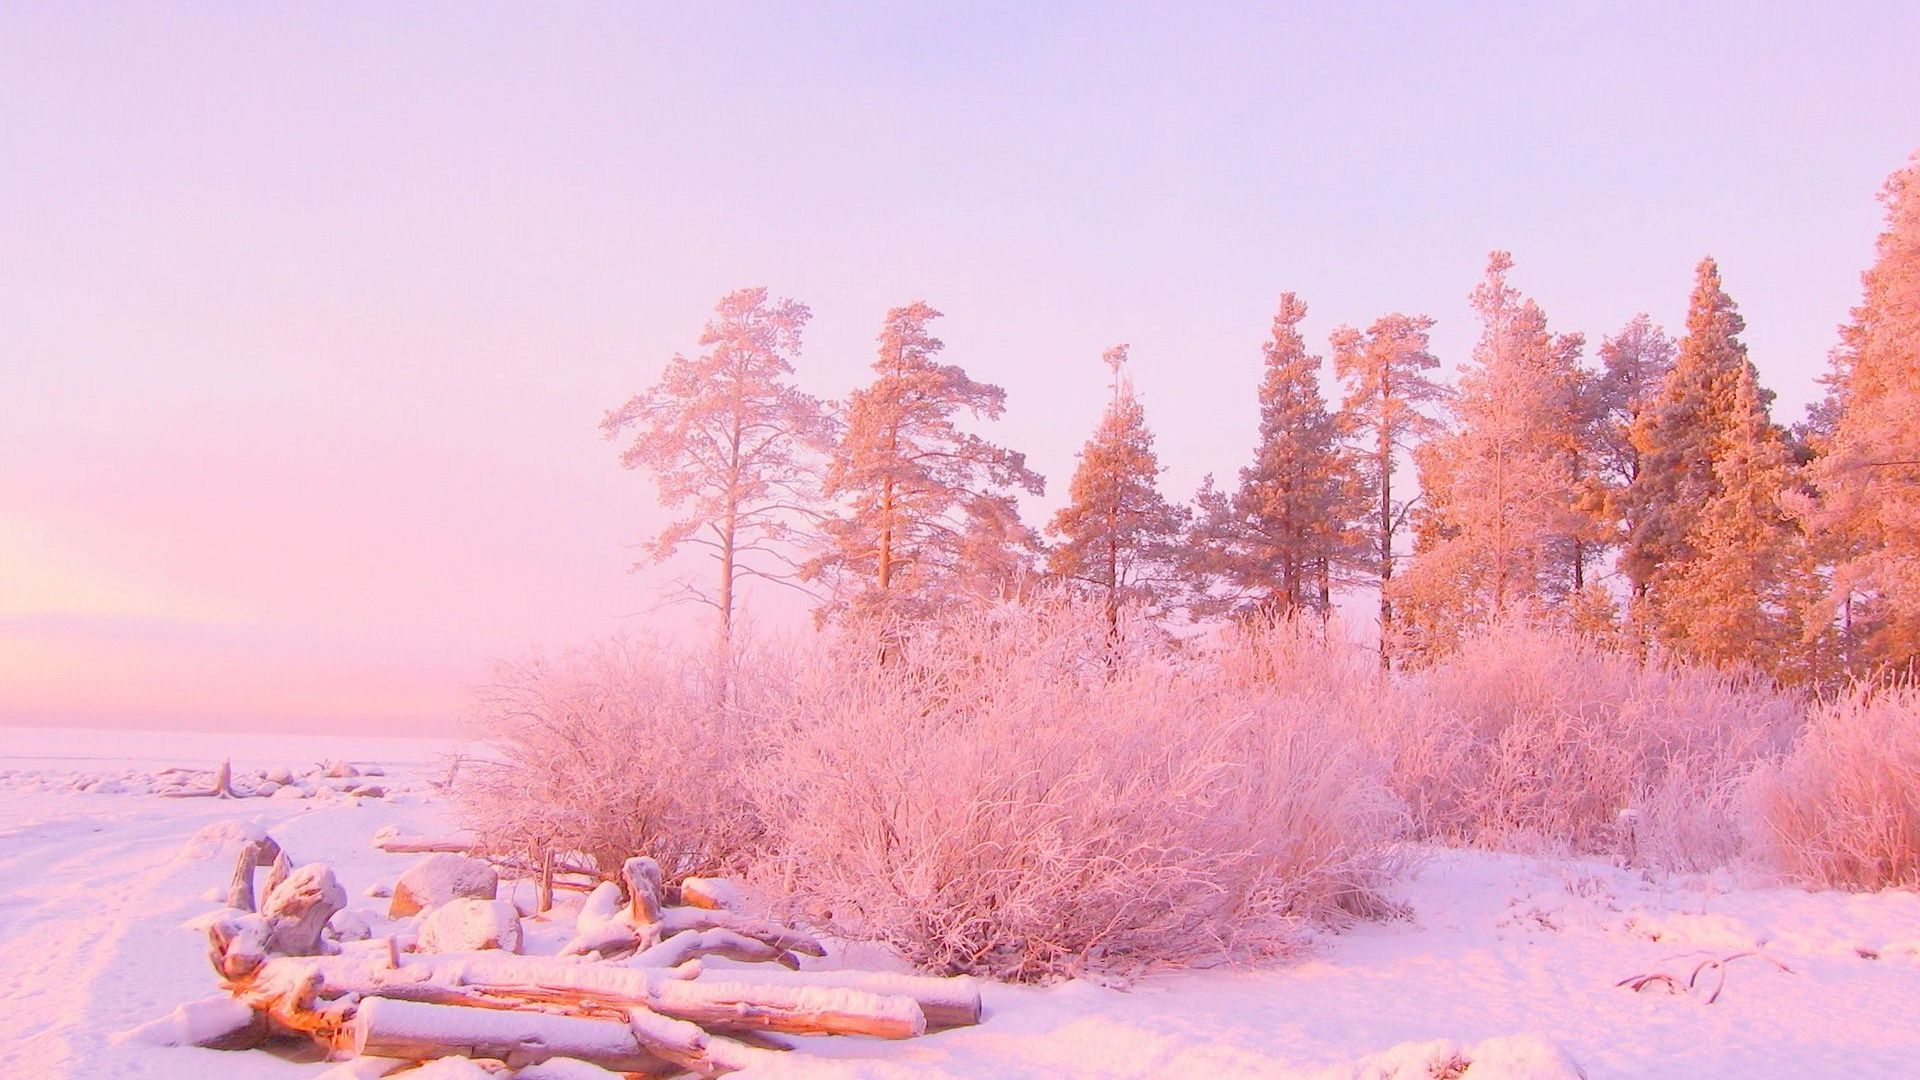 Pin By Mark On Hd Wallpapers: Light Pink Backgrounds Wallpaper